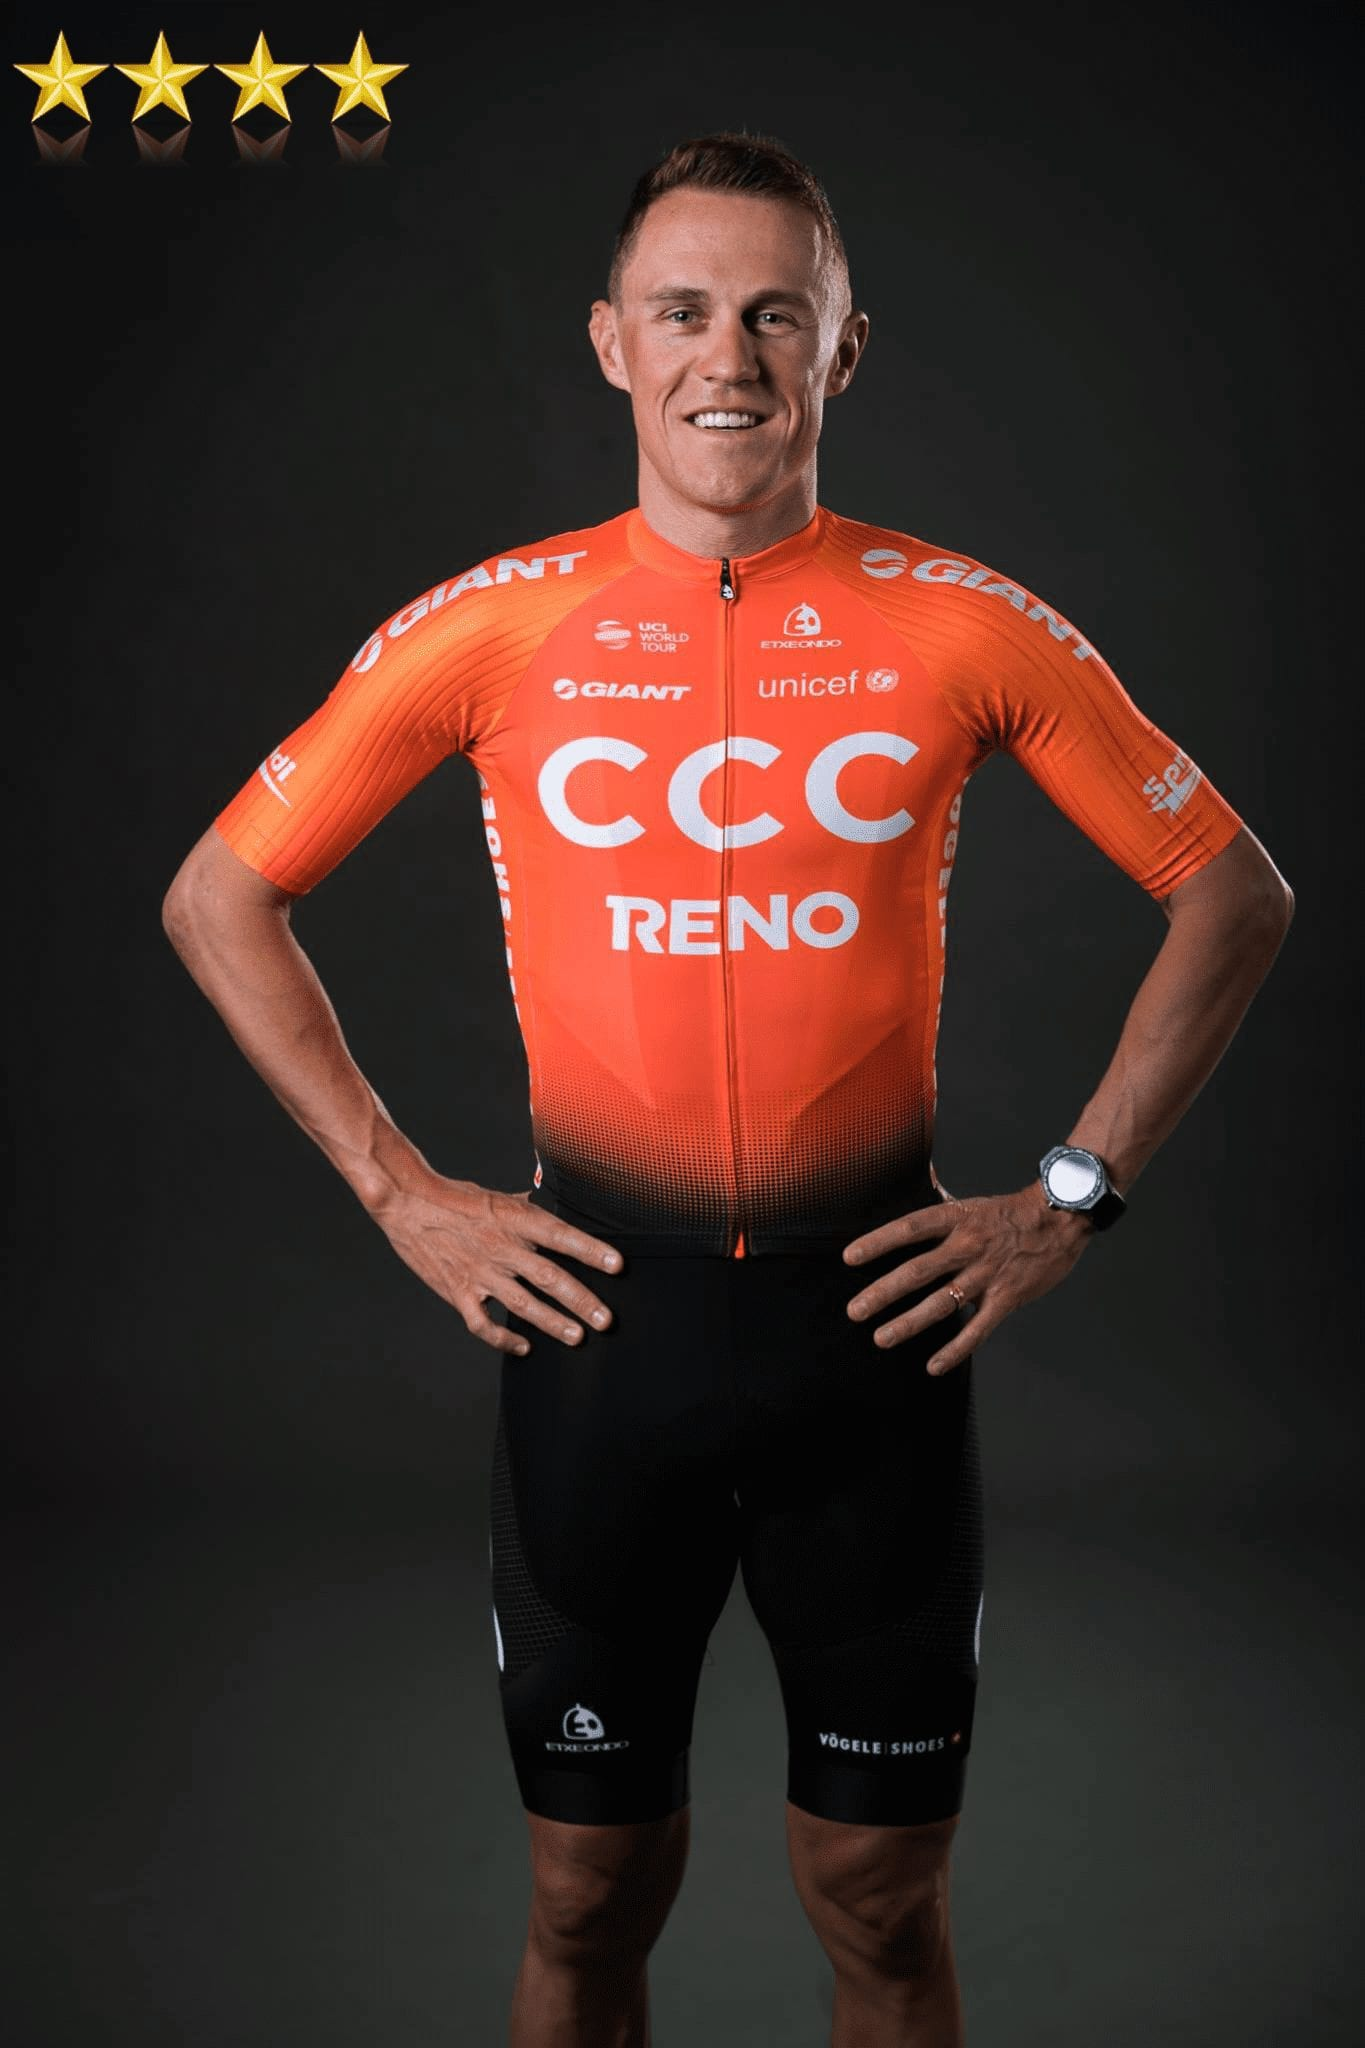 the new CCC team kit for 2019